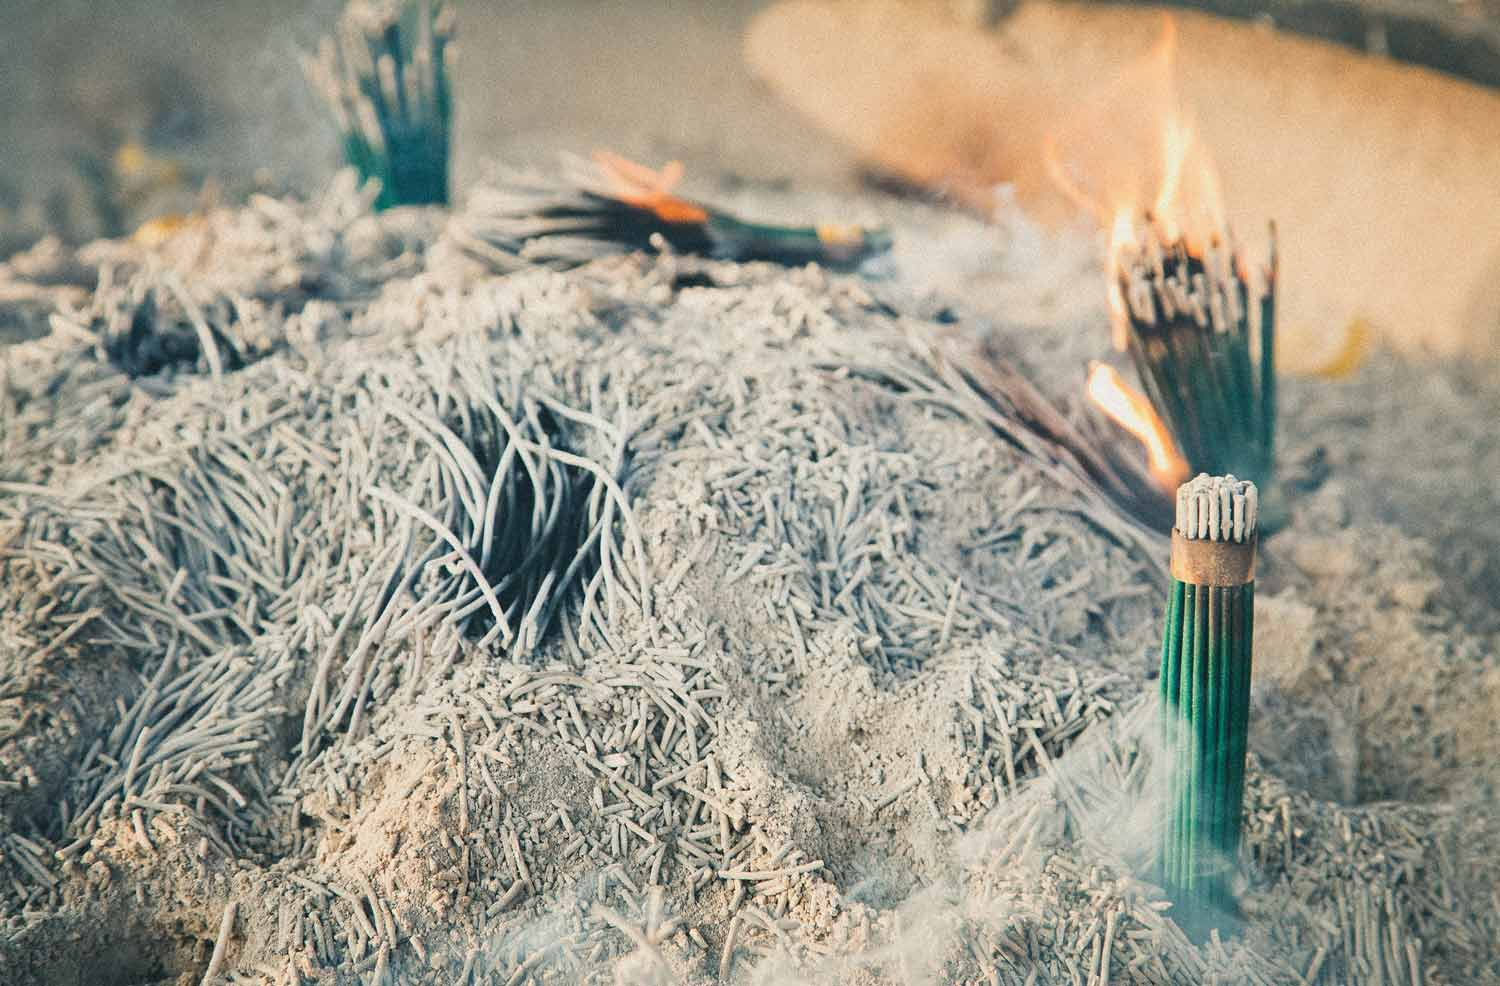 so we flow... Incense burning in a pile of ashes